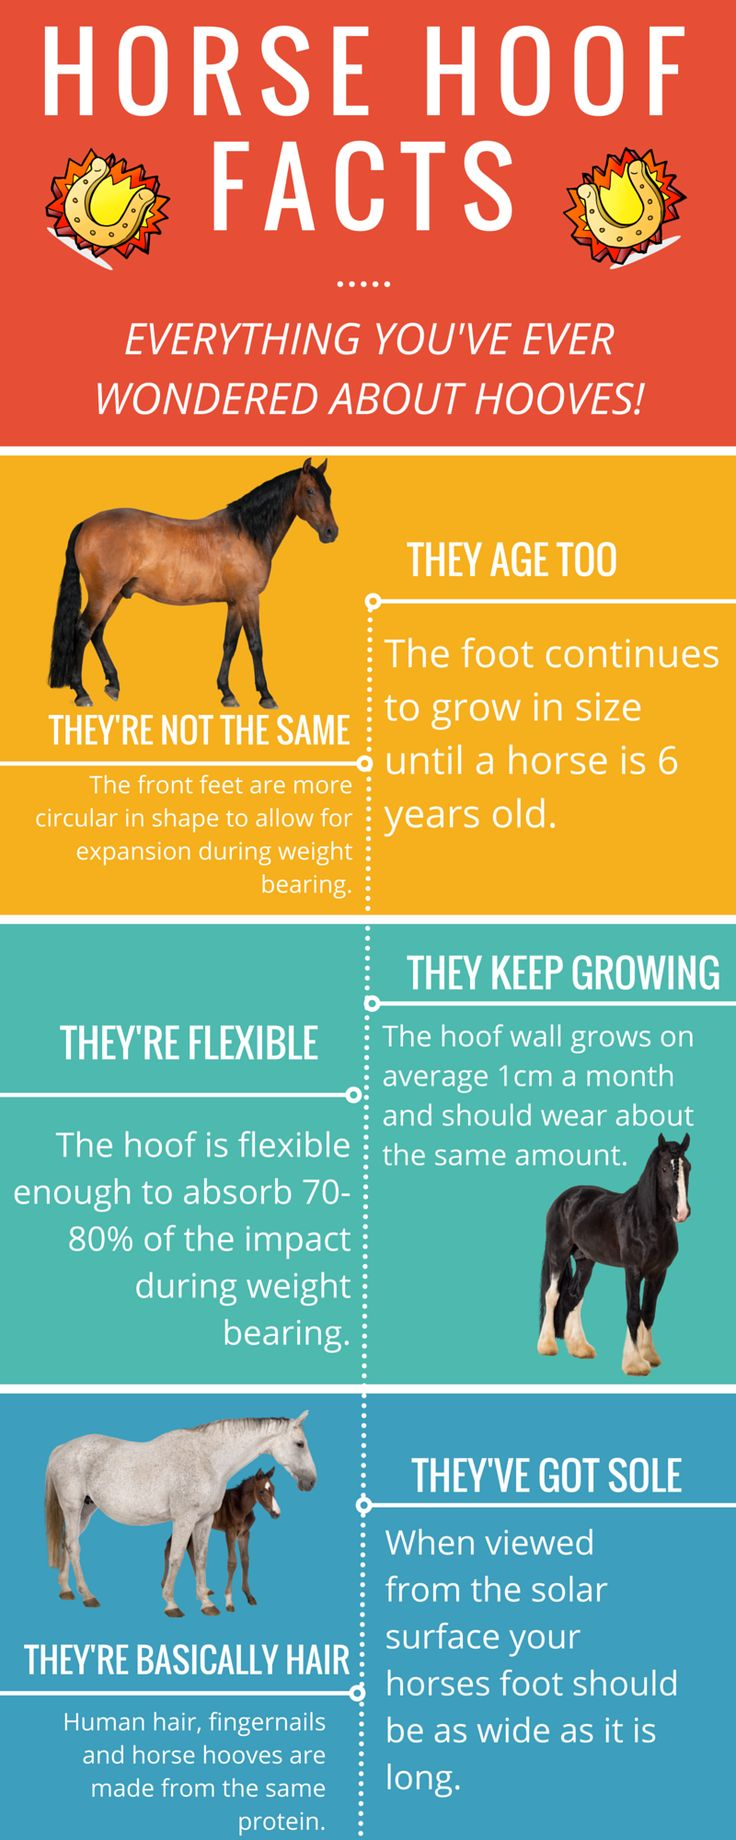 HORSE HOOF FACTS - Everything you've ever wondered about hooves! By www.brunetteinbreeches.com